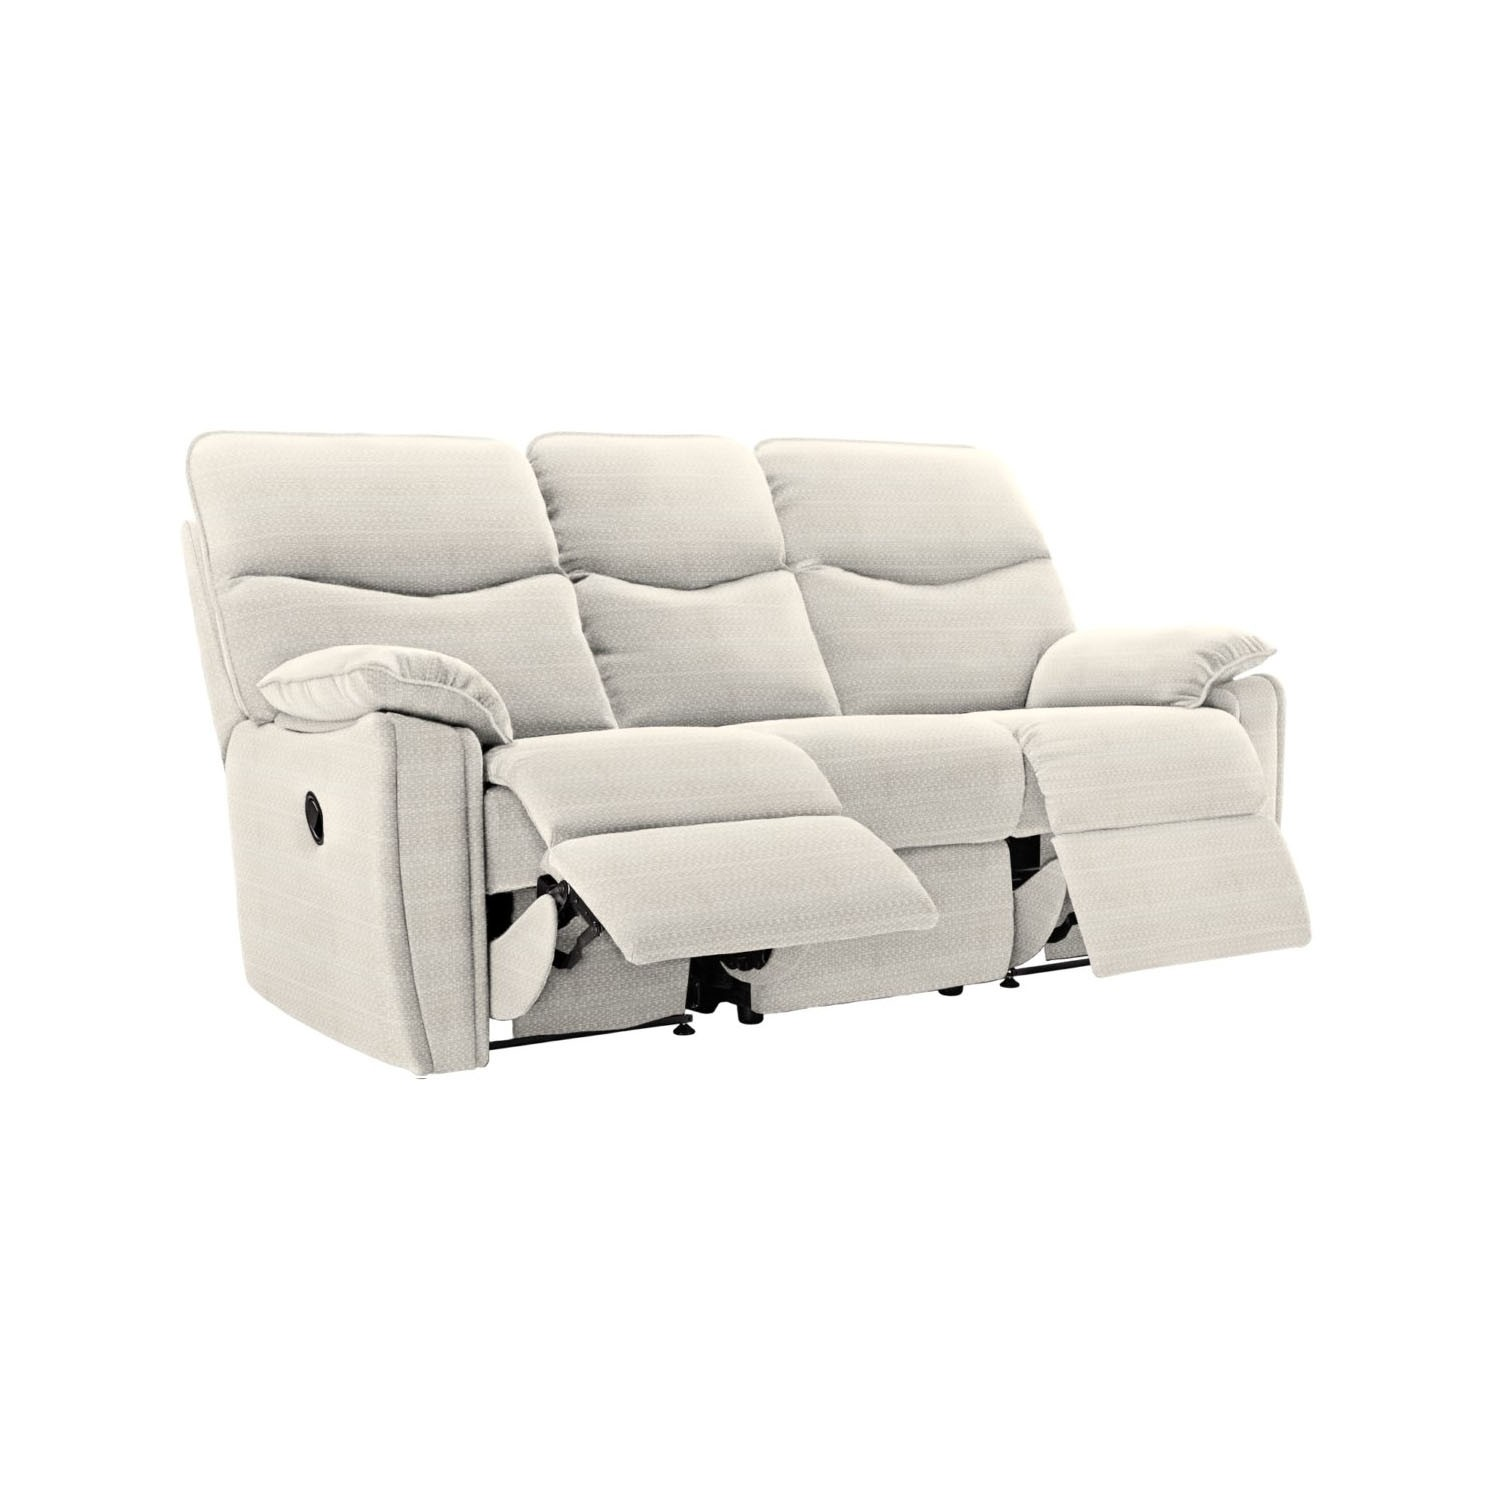 G Plan Henley 3 Seater Manual Double Recliner Fabric Sofa